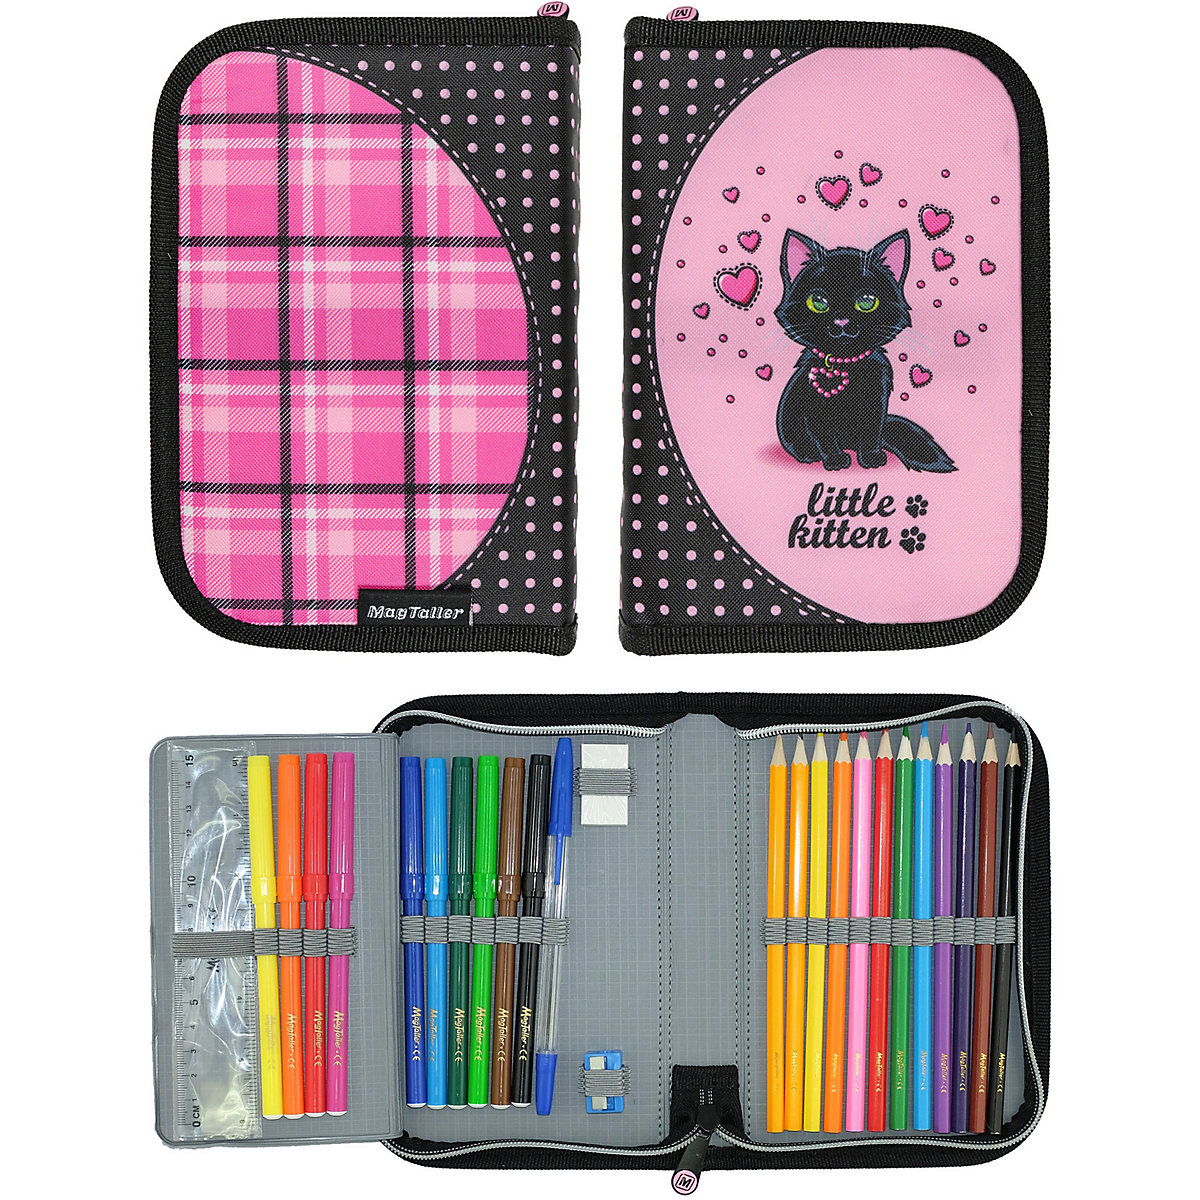 Pencil Cases MAGTALLER 11154862 school supplies stationery pencil cases for girls and boys drawing MTpromo angibabe office and school stationery pencil sharpener pink